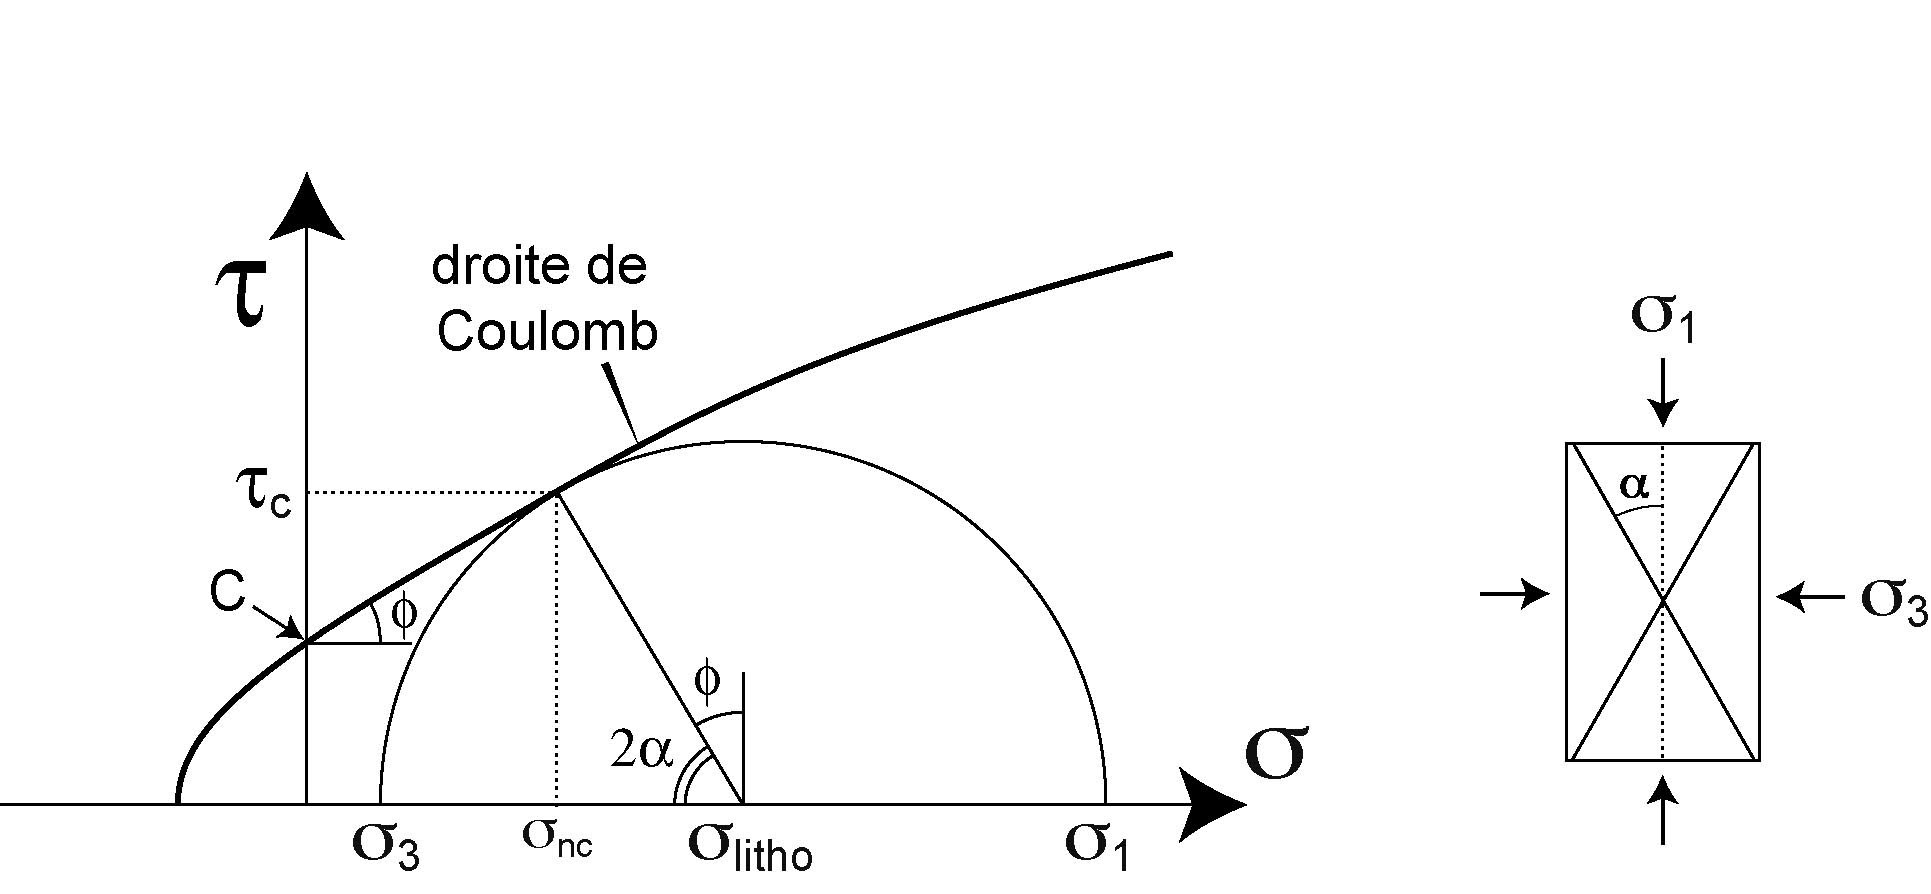 The Mohr Diagram